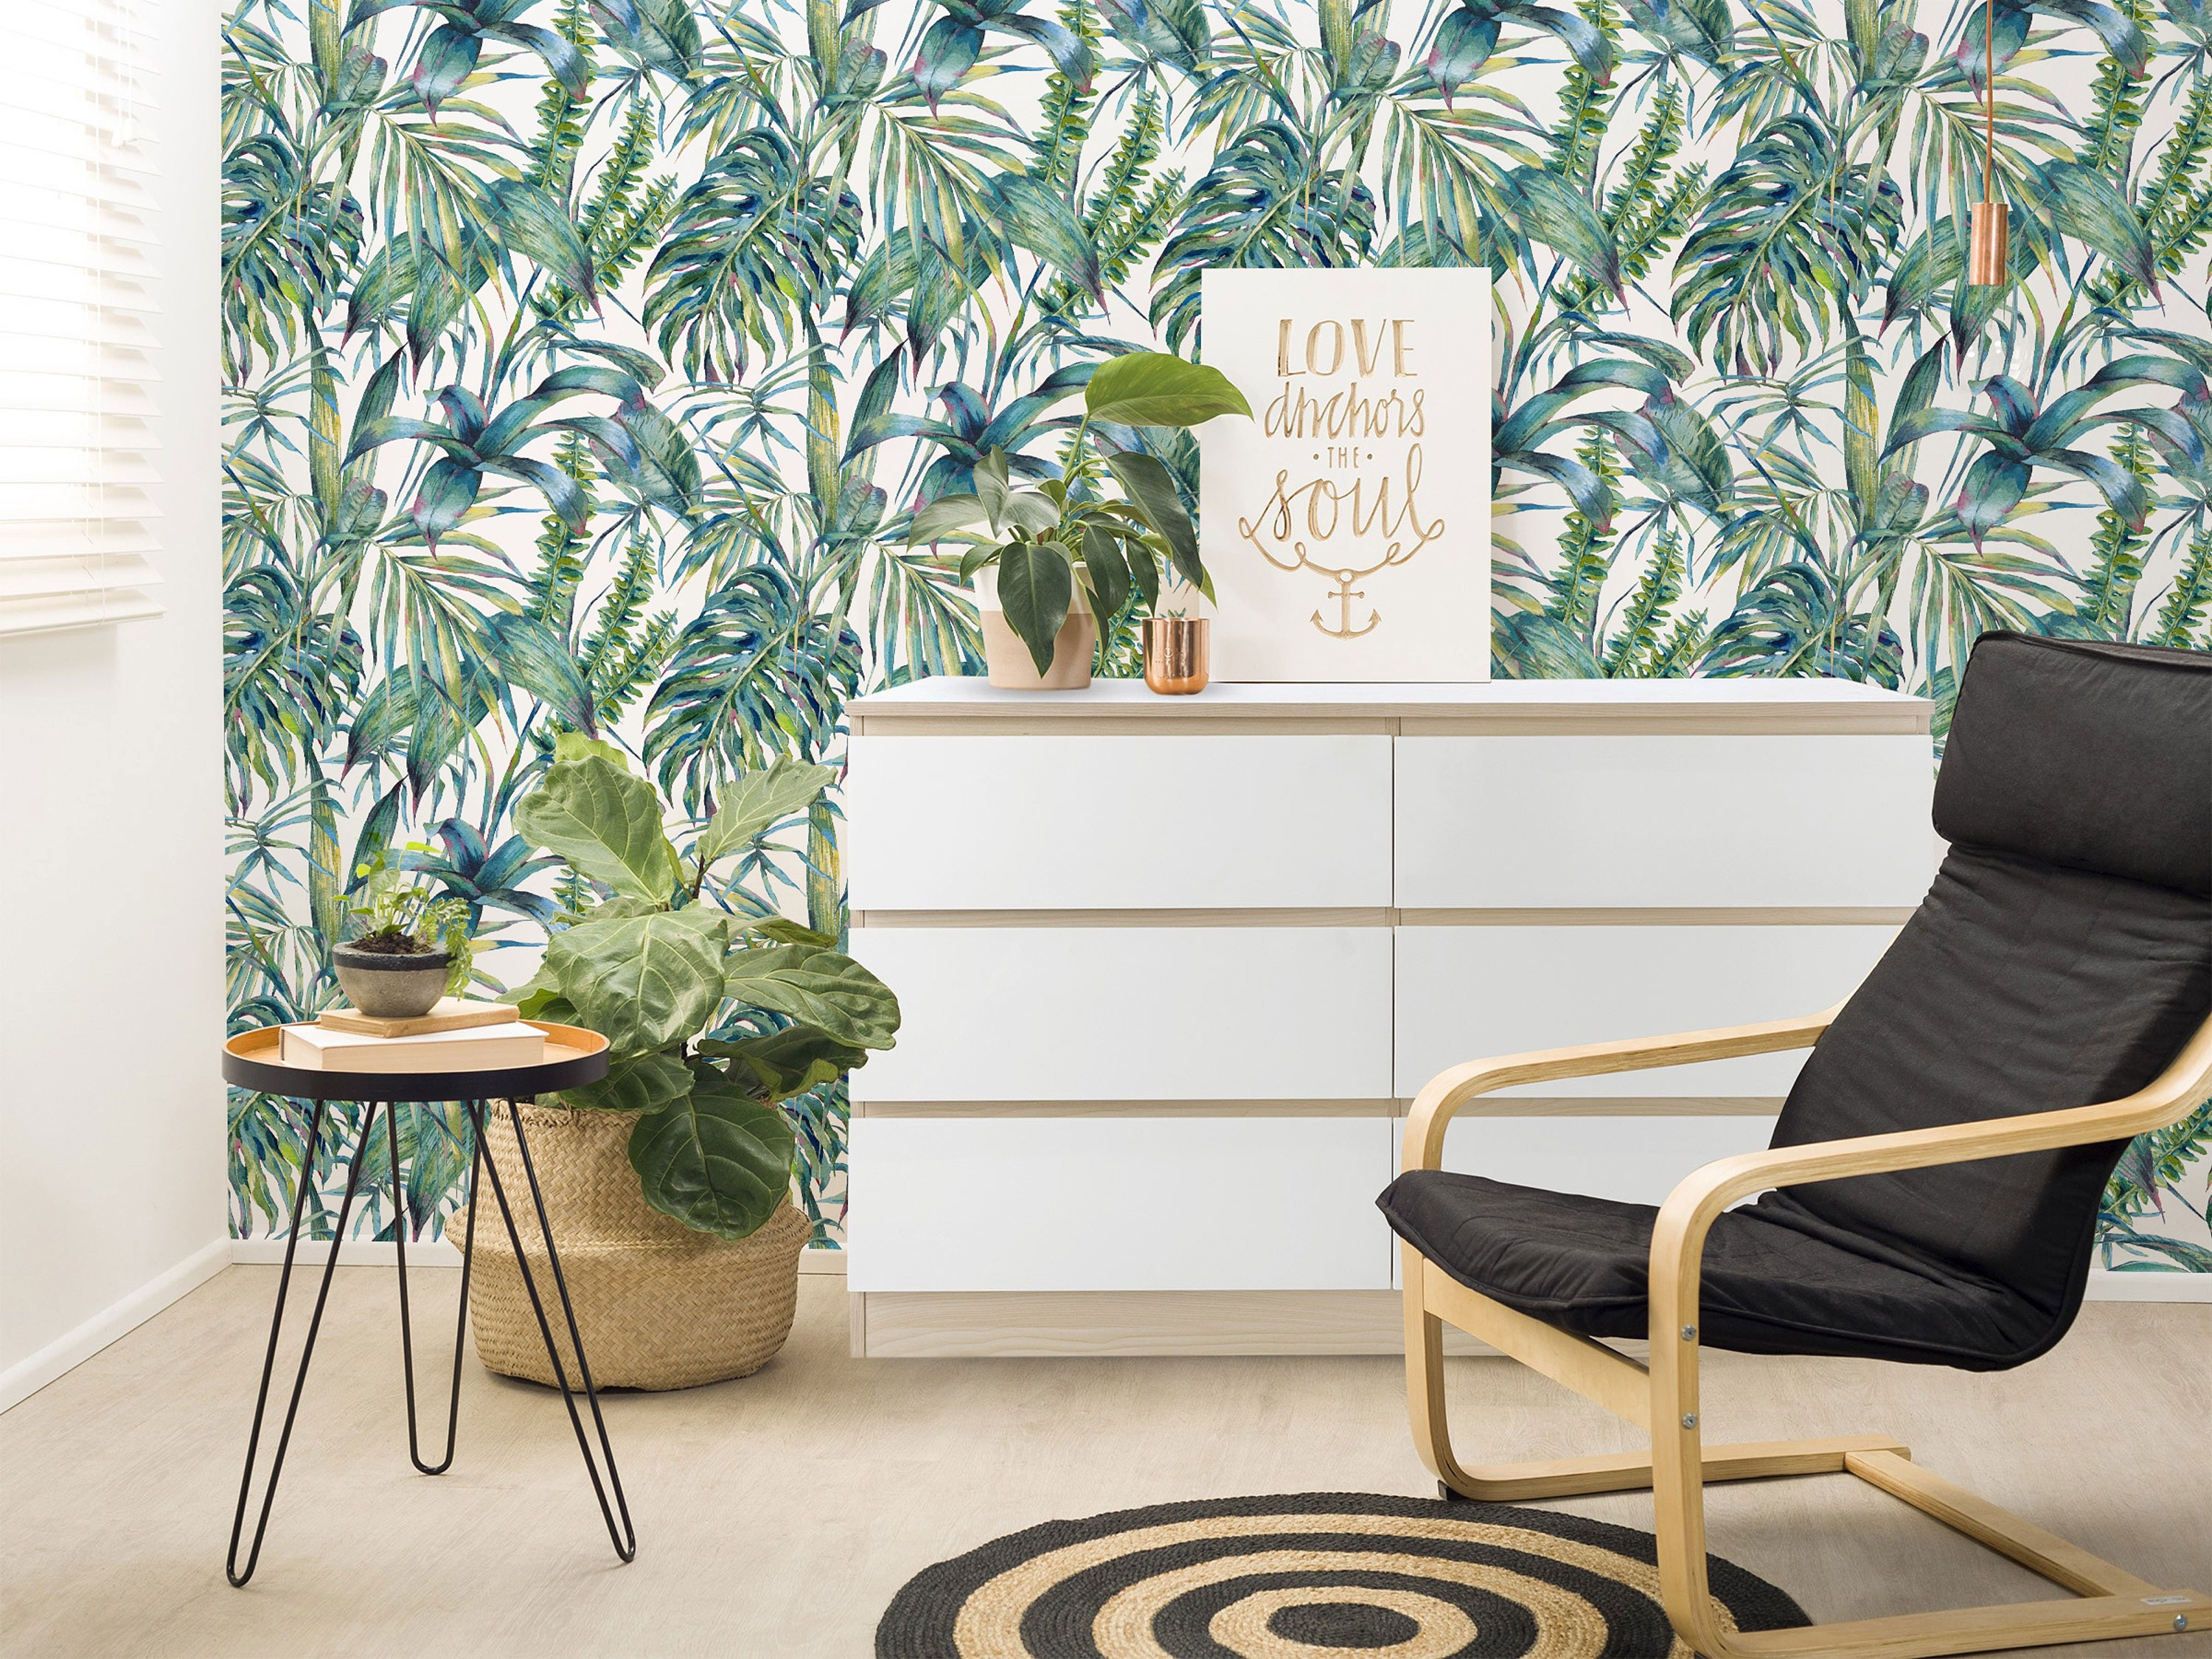 art decoration tropical image for outdoor amazing decor tfile popular styles site appealing wall fine con and